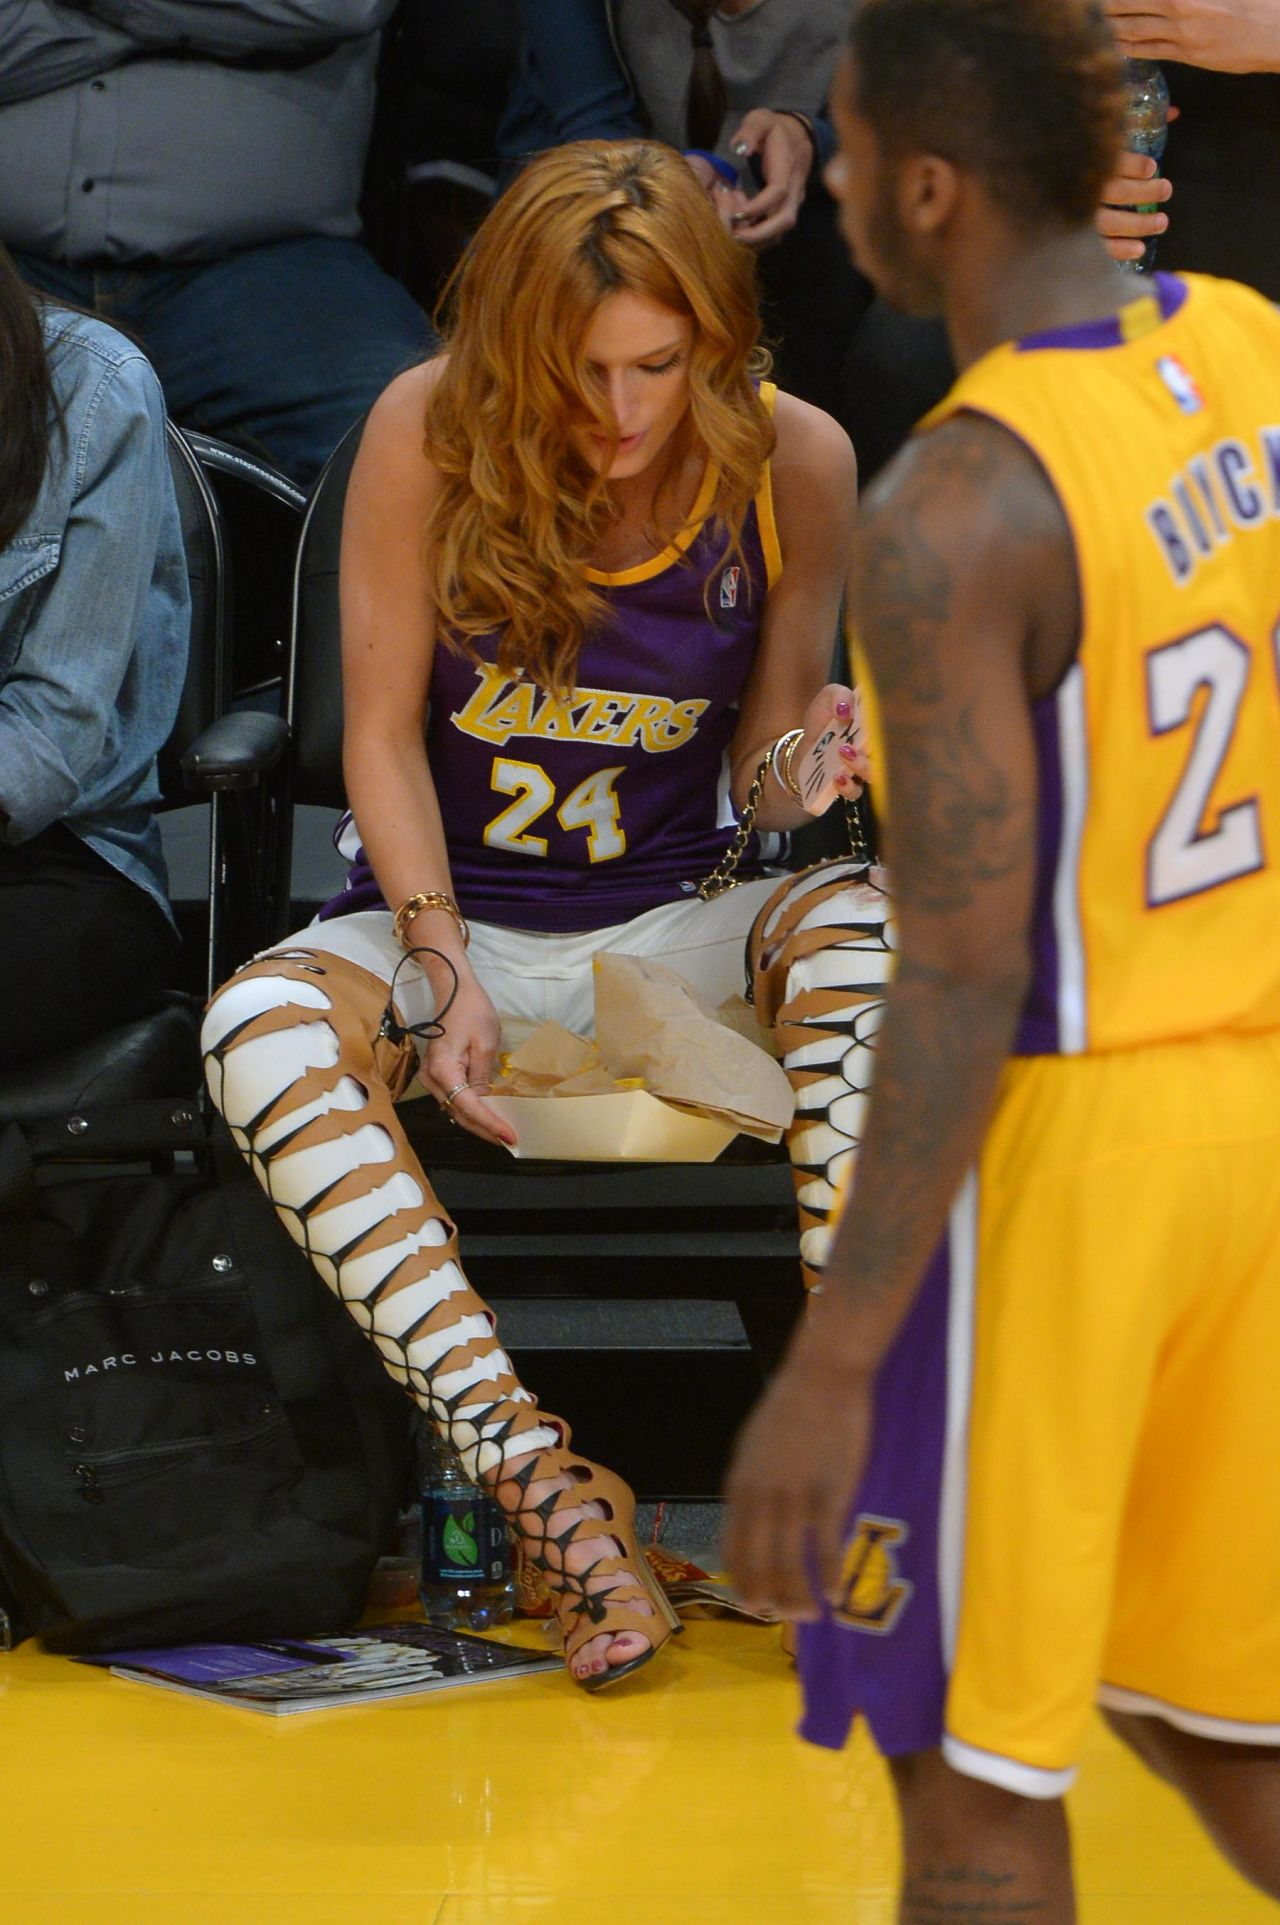 - Bella at Staples Thorne Lakers Game Boyfriend With